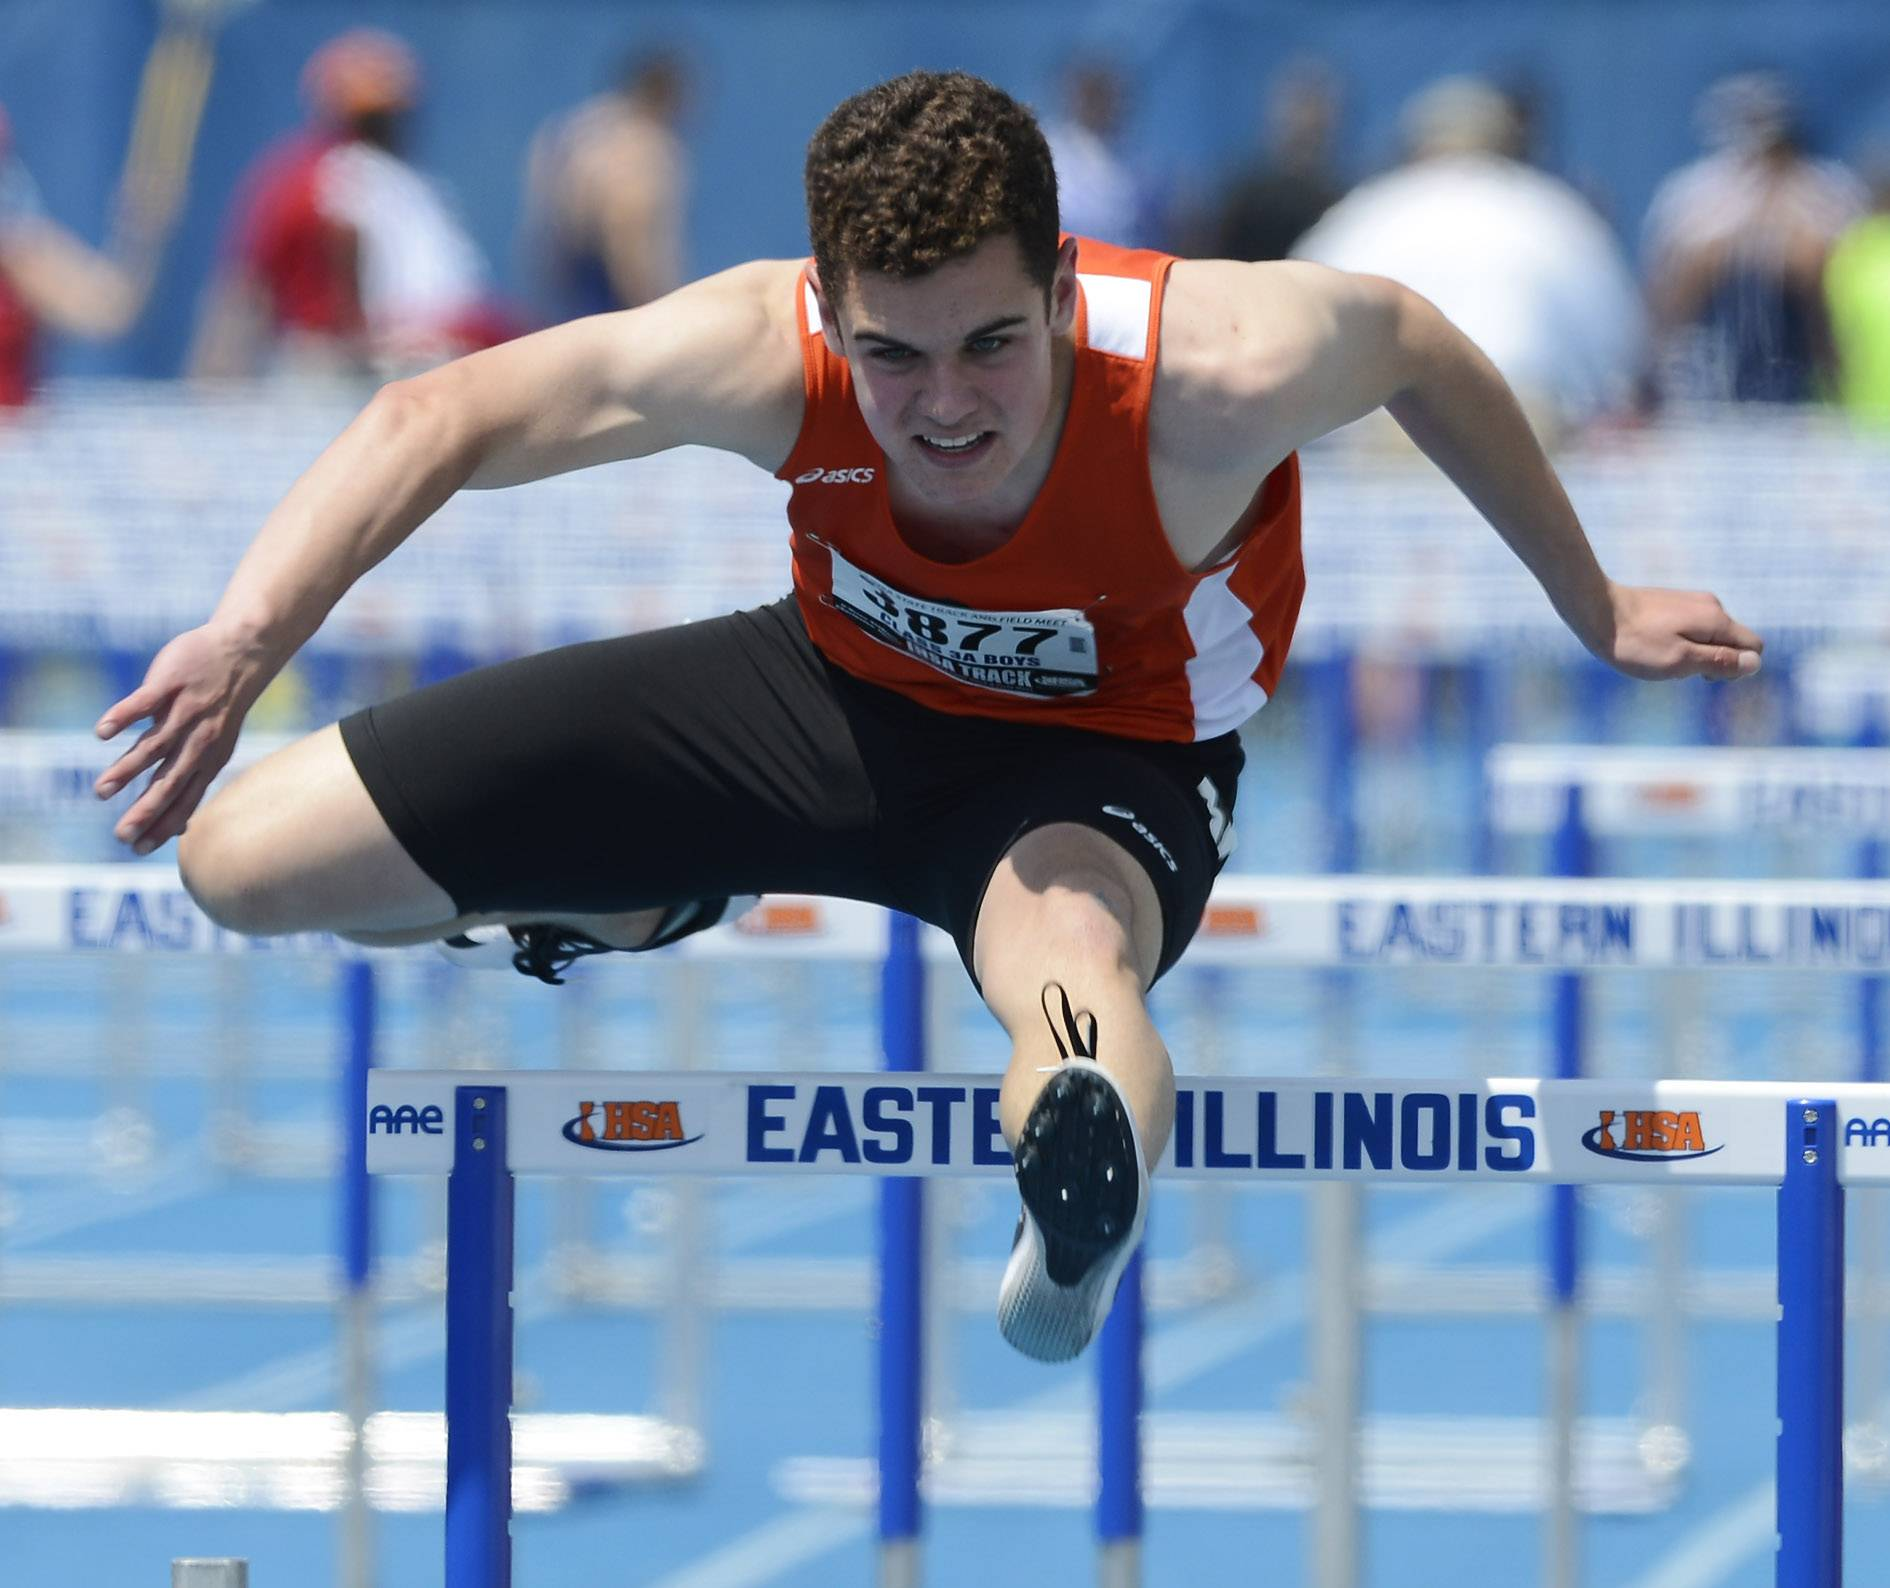 St. Charles East's Kyle Decker clears the last hurdle in the 110-meter high hurdles during the Class 3A boys track and field state preliminaries in Charleston on Friday.